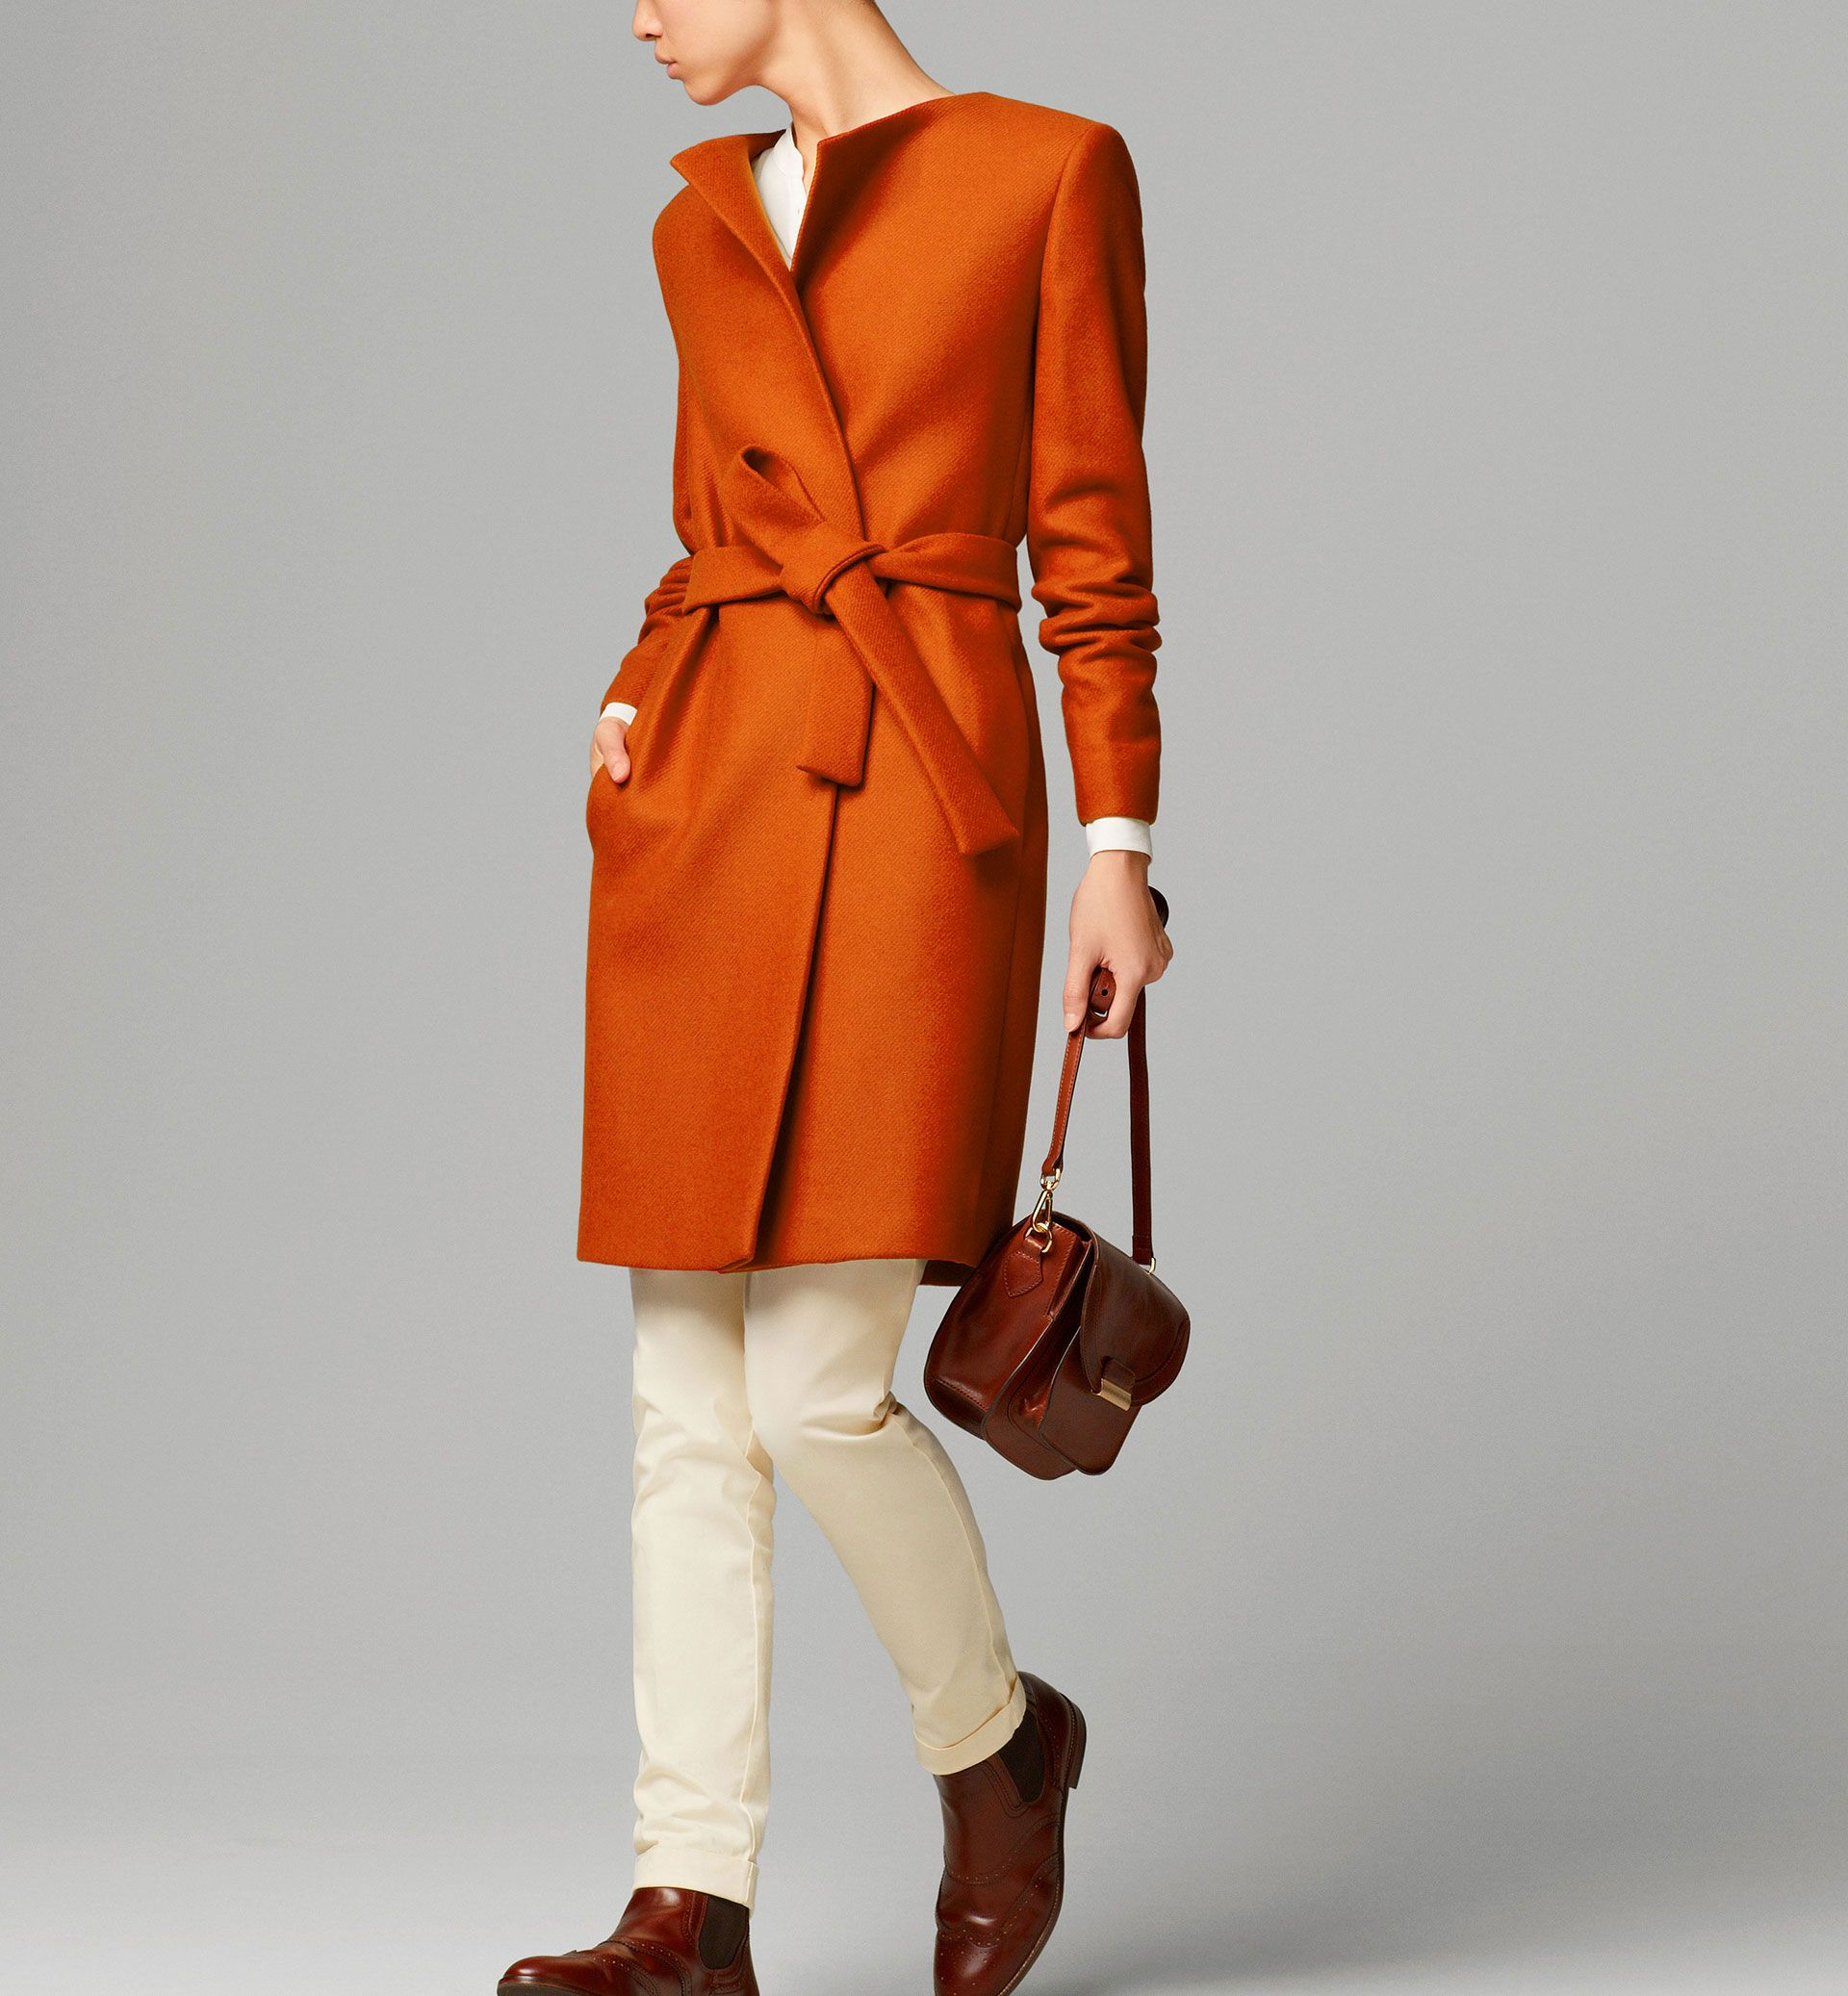 MASSIMO DUTTI | Belted orange coat | 80% wool, 20% polyamide ...